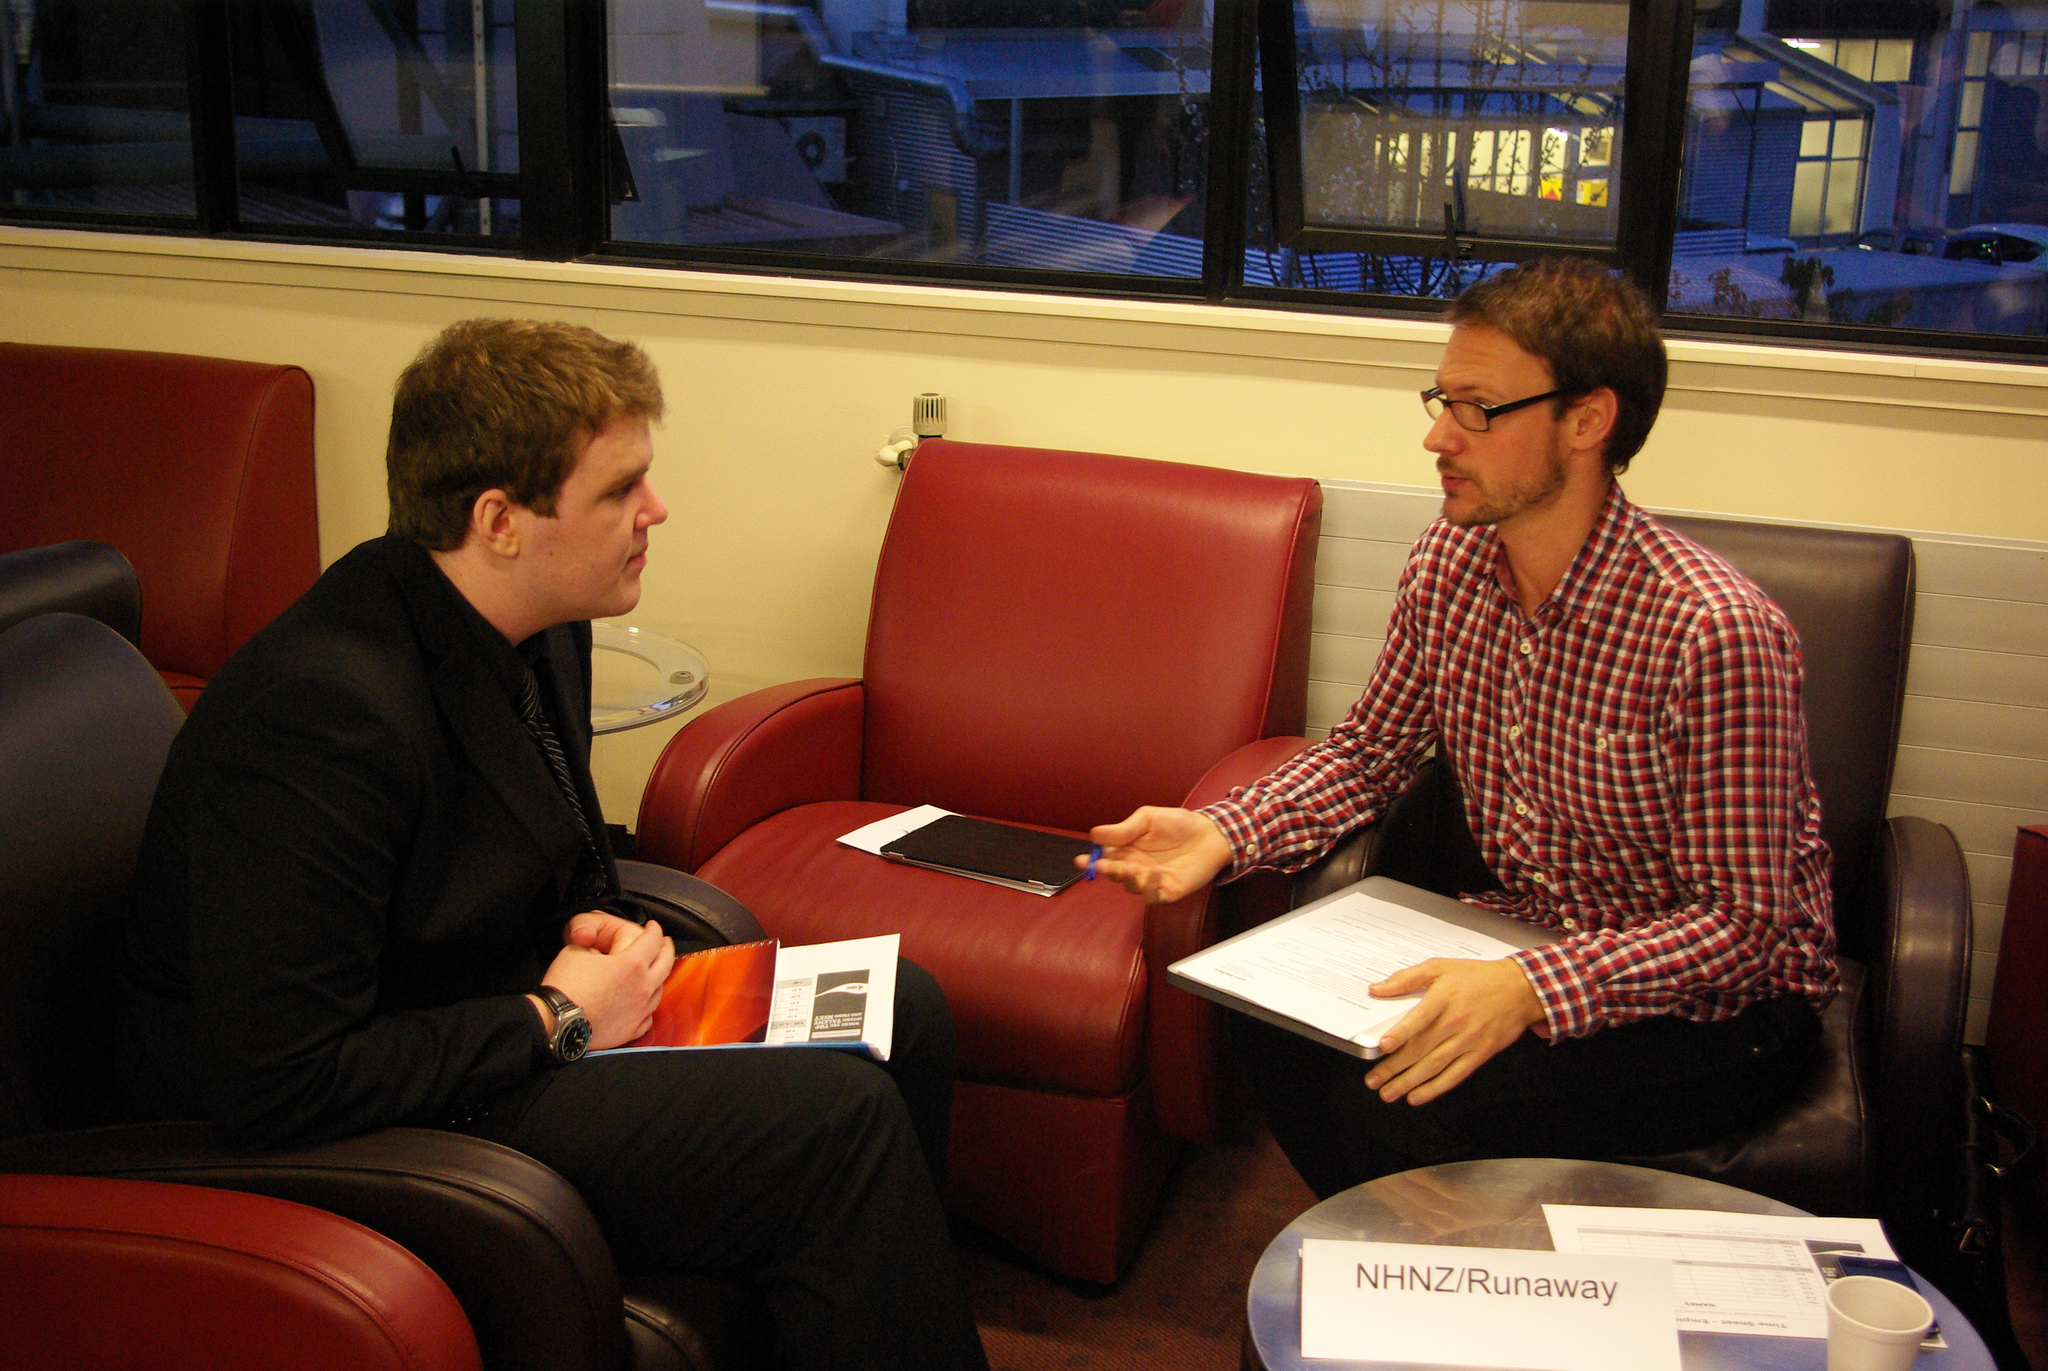 Image of two men during interview